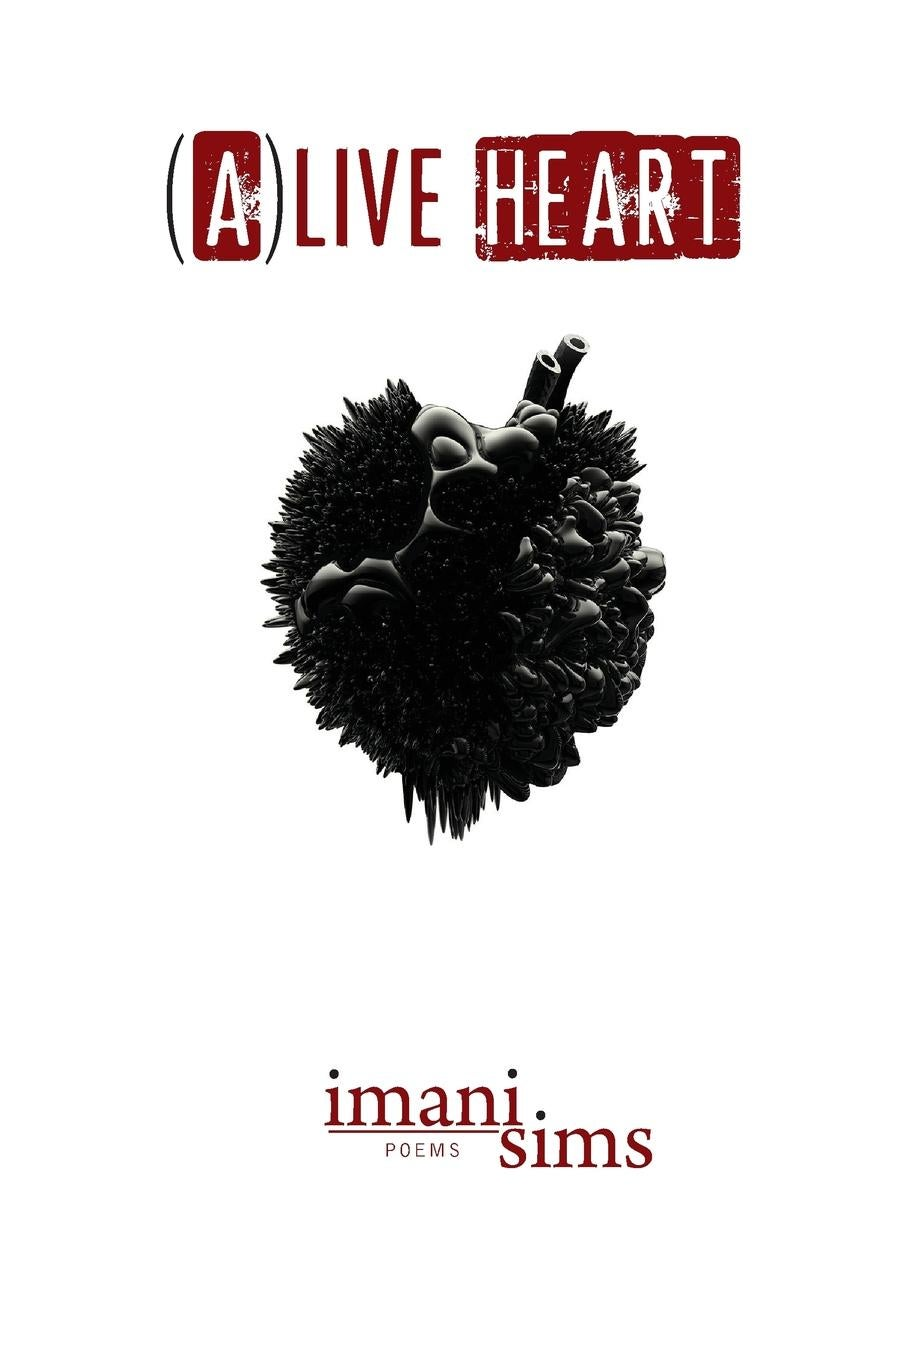 Image of A(Live) Heart by Imani Sims